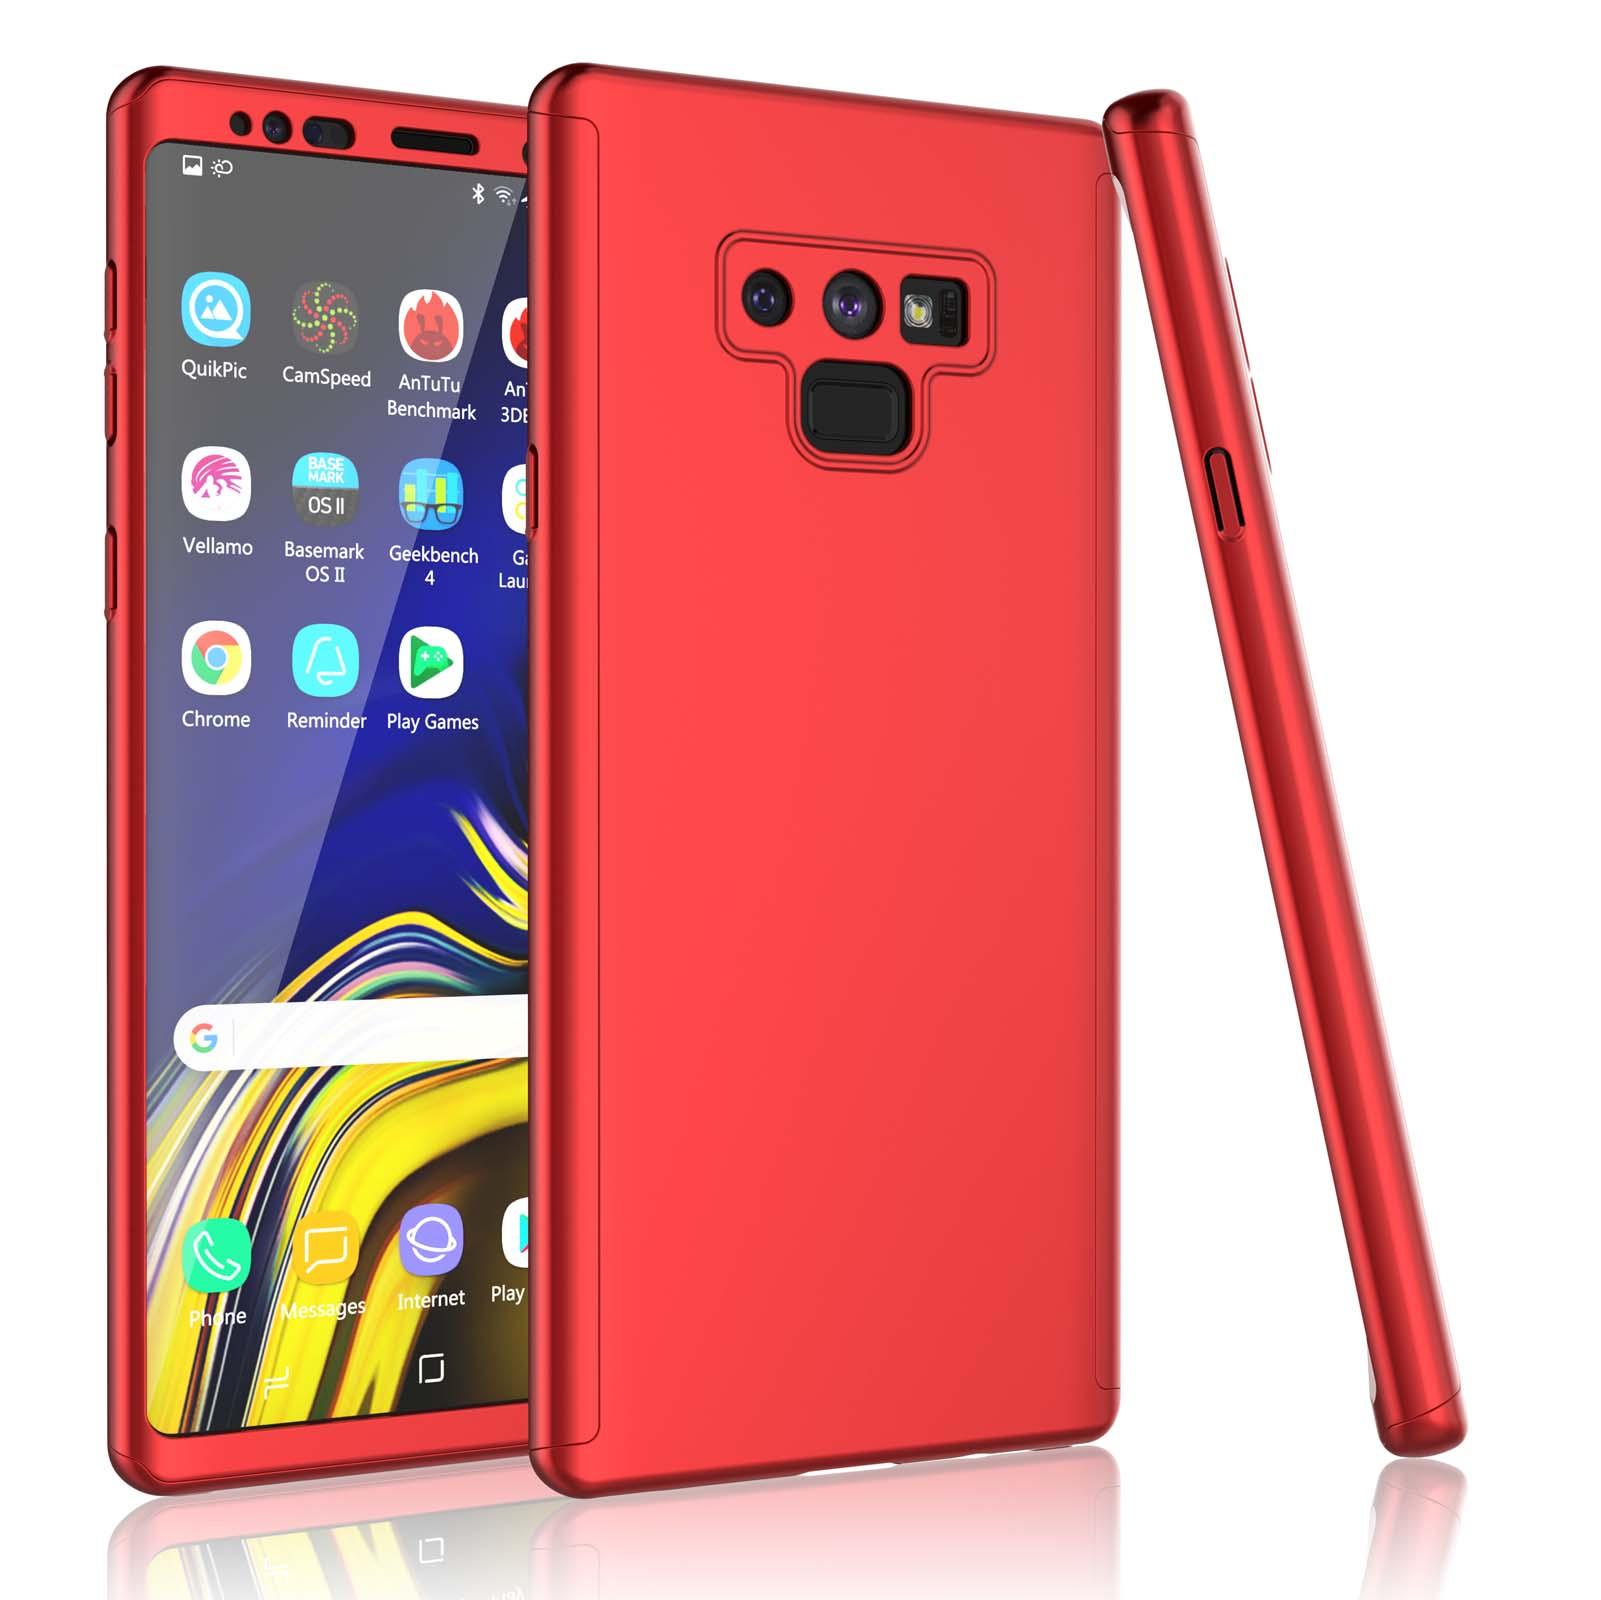 Samsung Galaxy S10 / S10 Plus / S9 / S9+ / Note 9 Case, Tekcoo [Red] Ultra Thin Full Body Coverage Protection Scratch Proof Hard Slim Hybrid Cover Shell Tempered Glass Screen Protector Skin